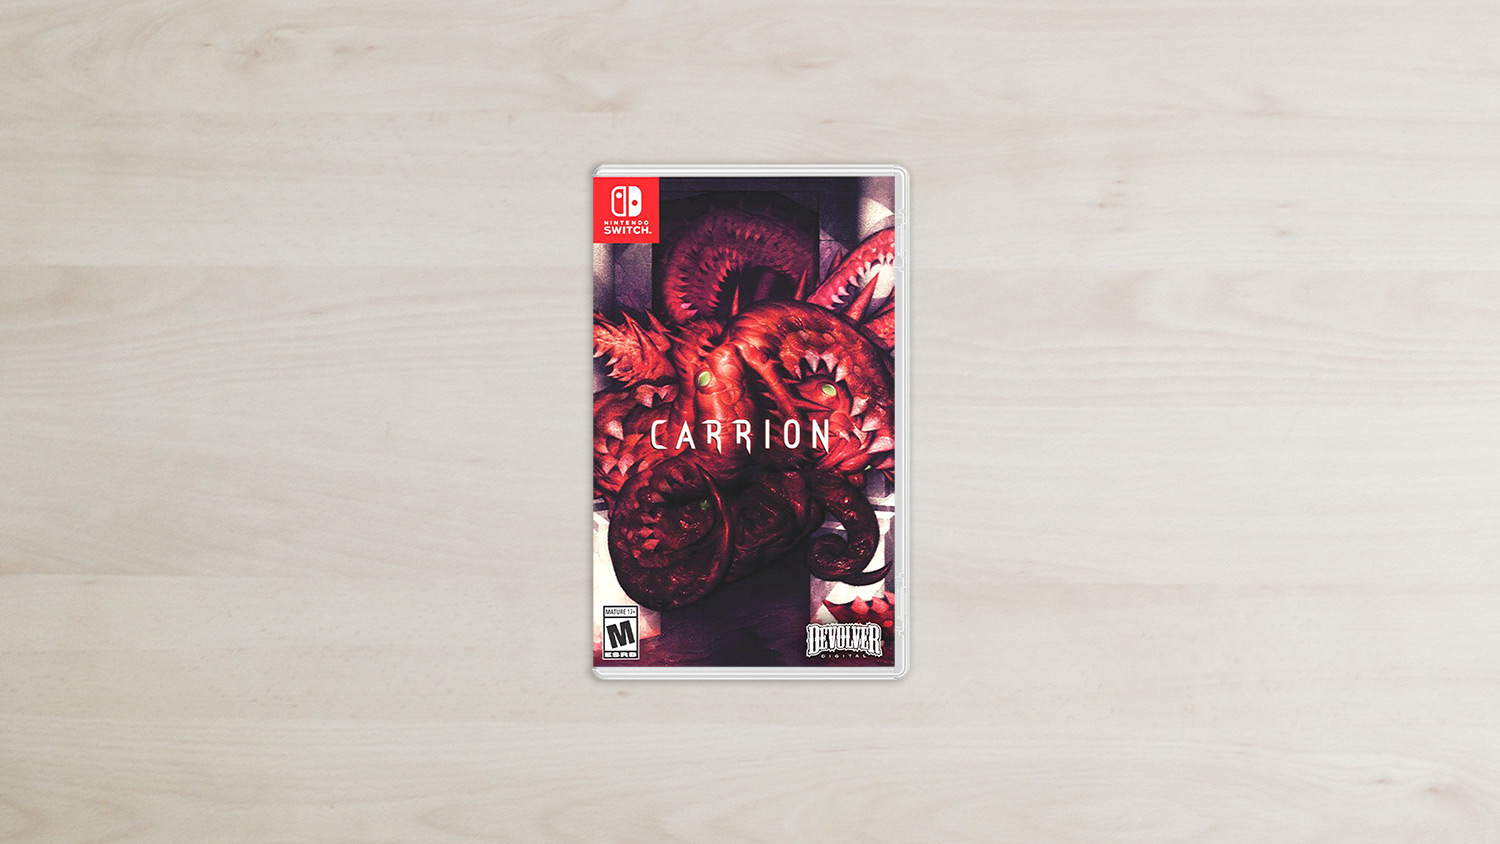 Carrion - Nintendo Switch Box